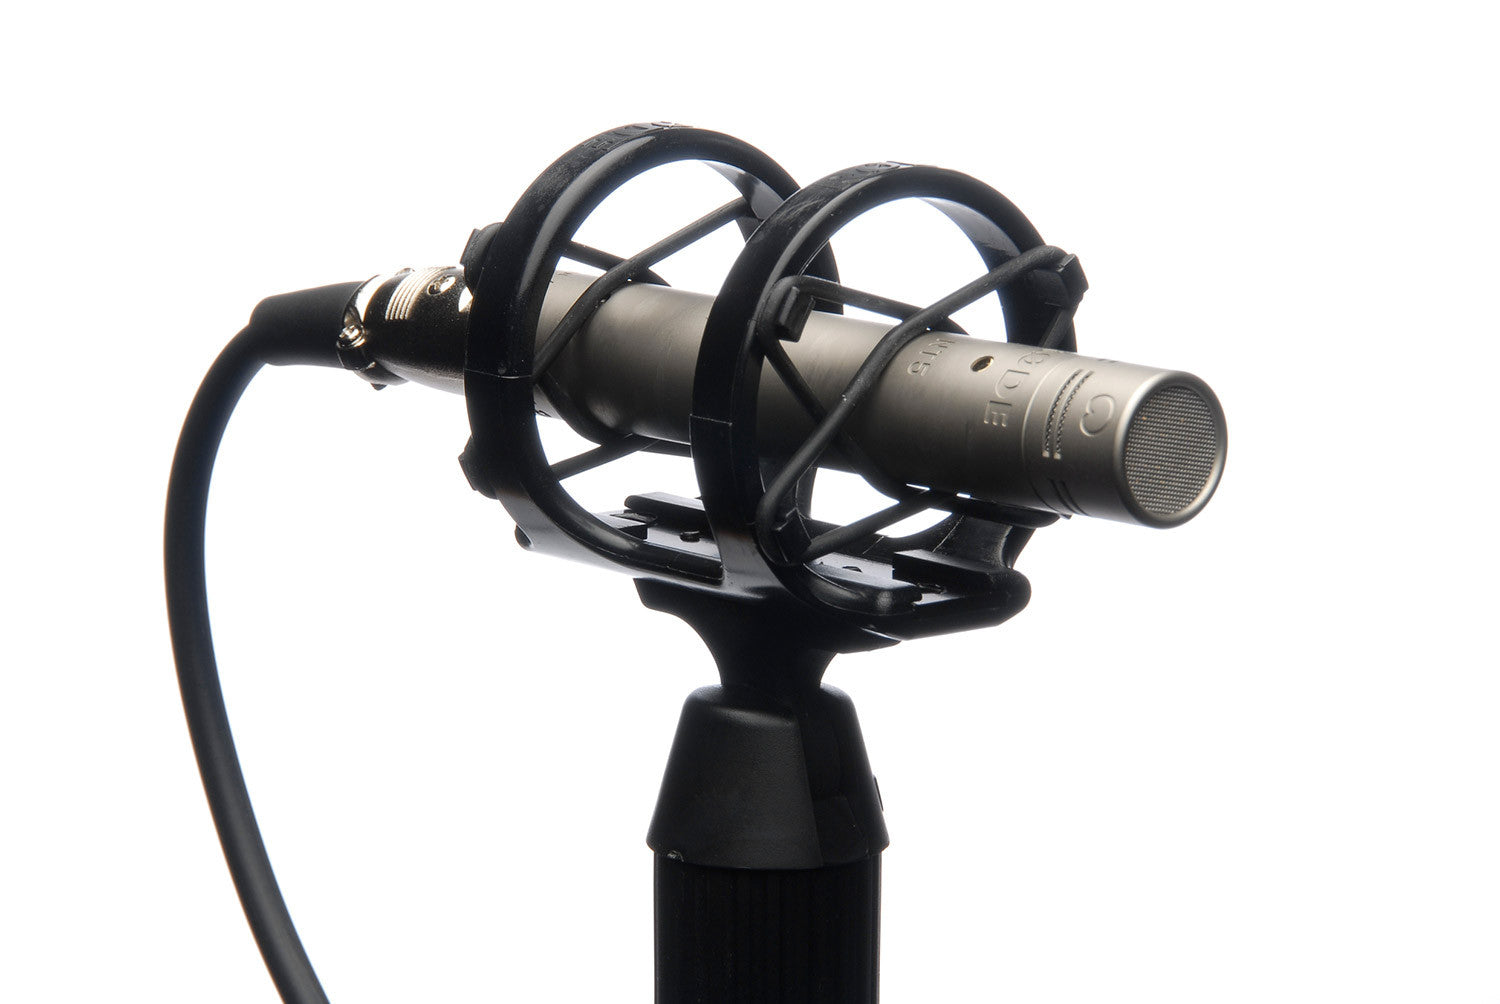 RODE NT5 Cardioid Studio Condenser Microphones (Single Microphone)